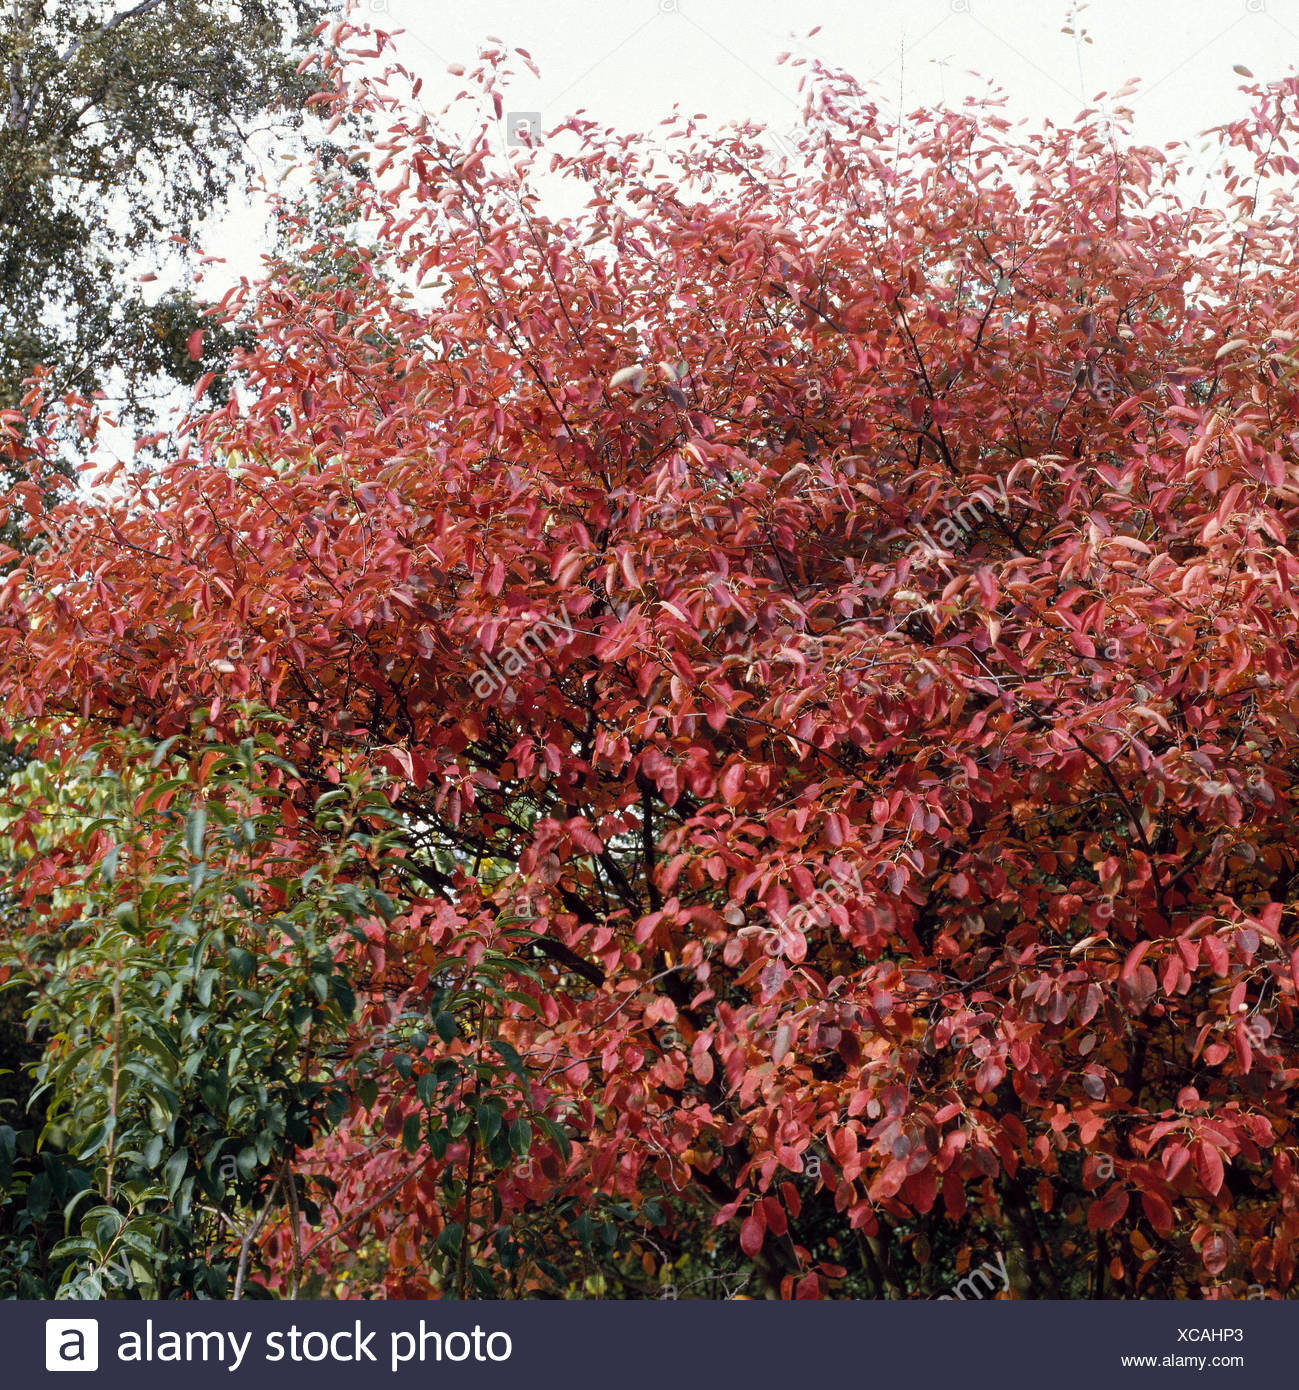 Amelanchier lamarckii AGM. - in Autumn colour   TRS020694 - Stock Image